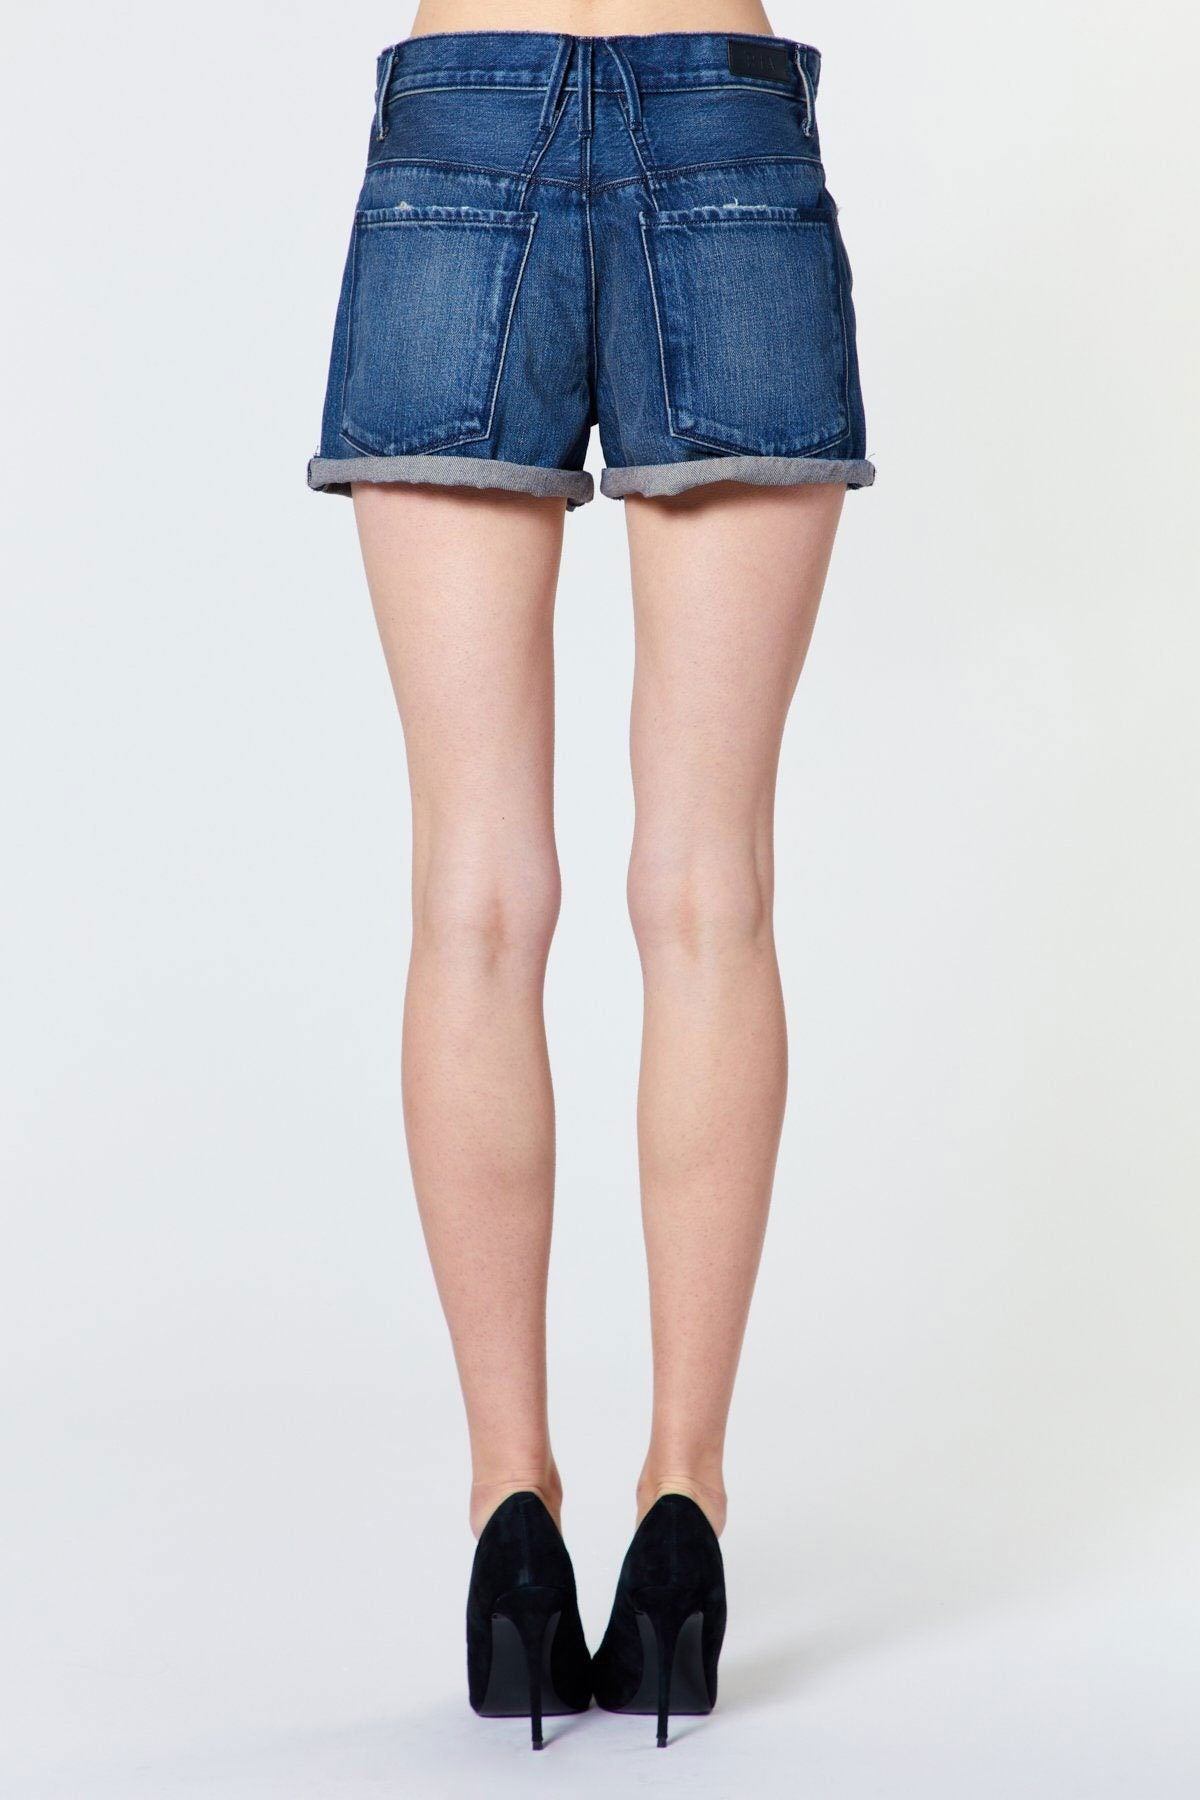 RTA | Pierce Belted Baggy Short - Carpenter Blue